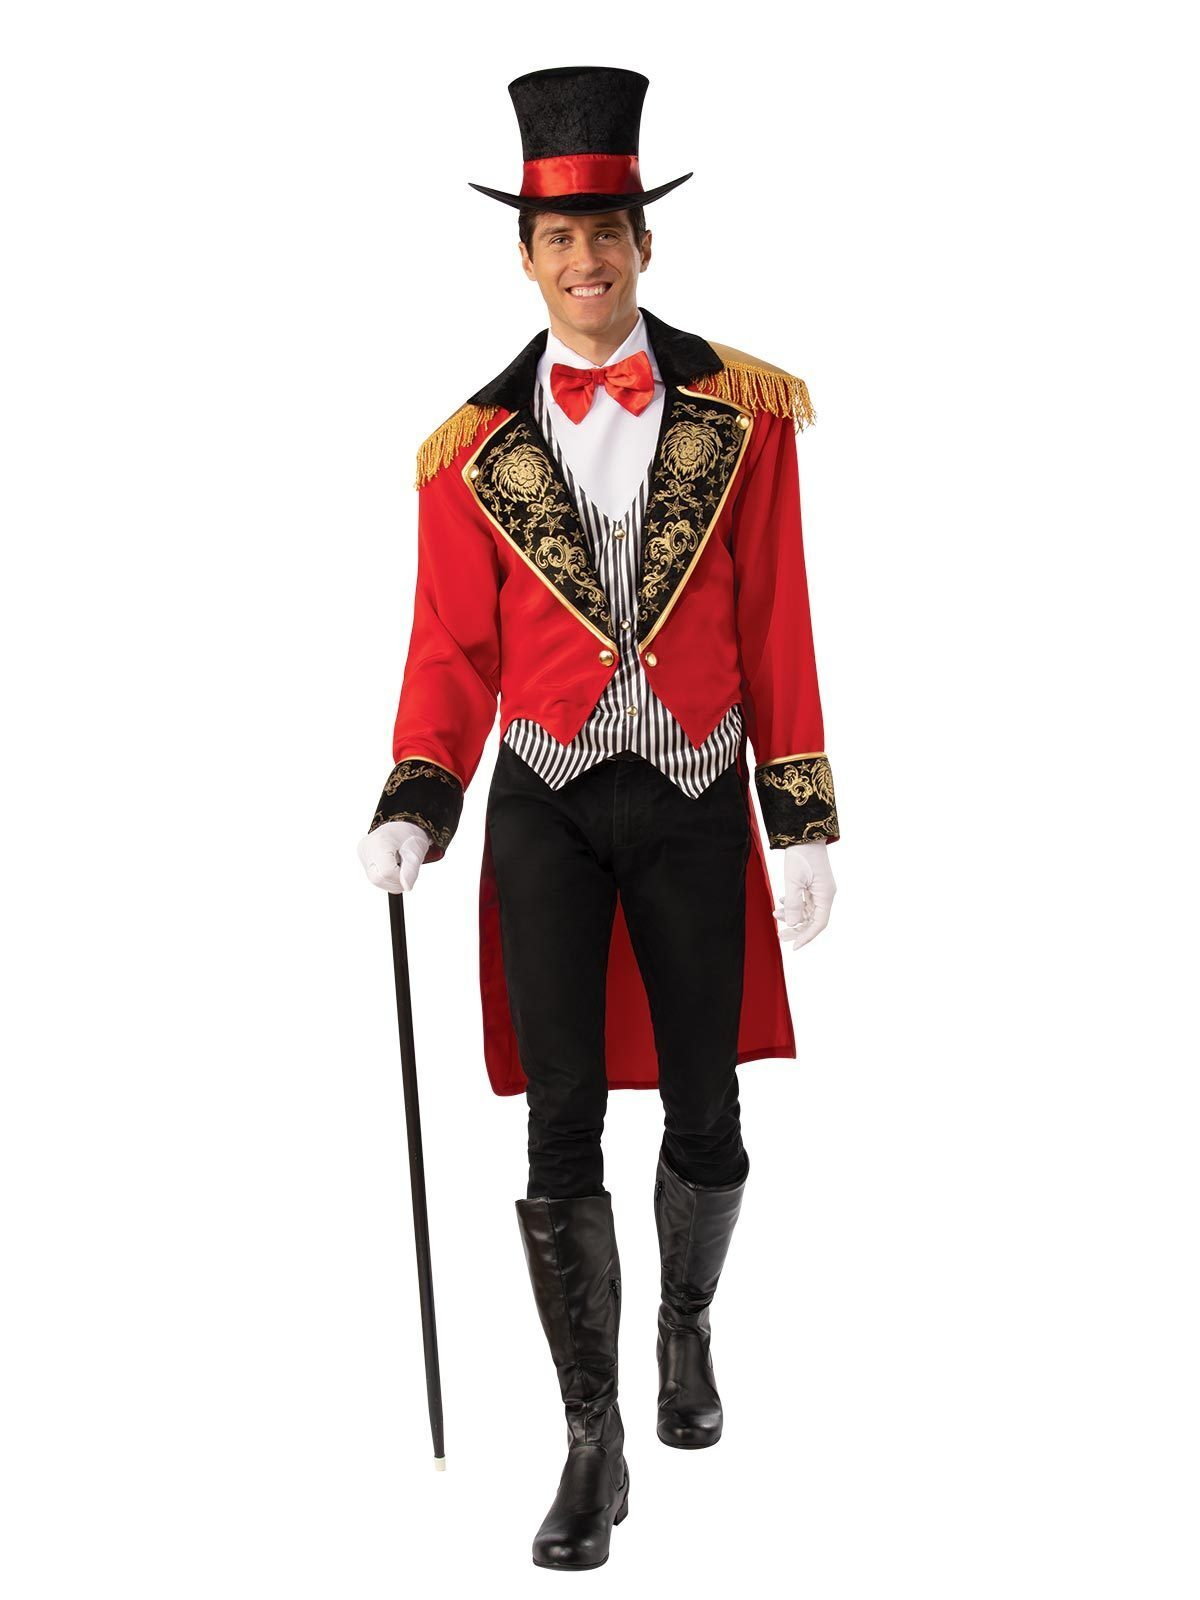 Ringmaster Man Costume - Buy Online Only